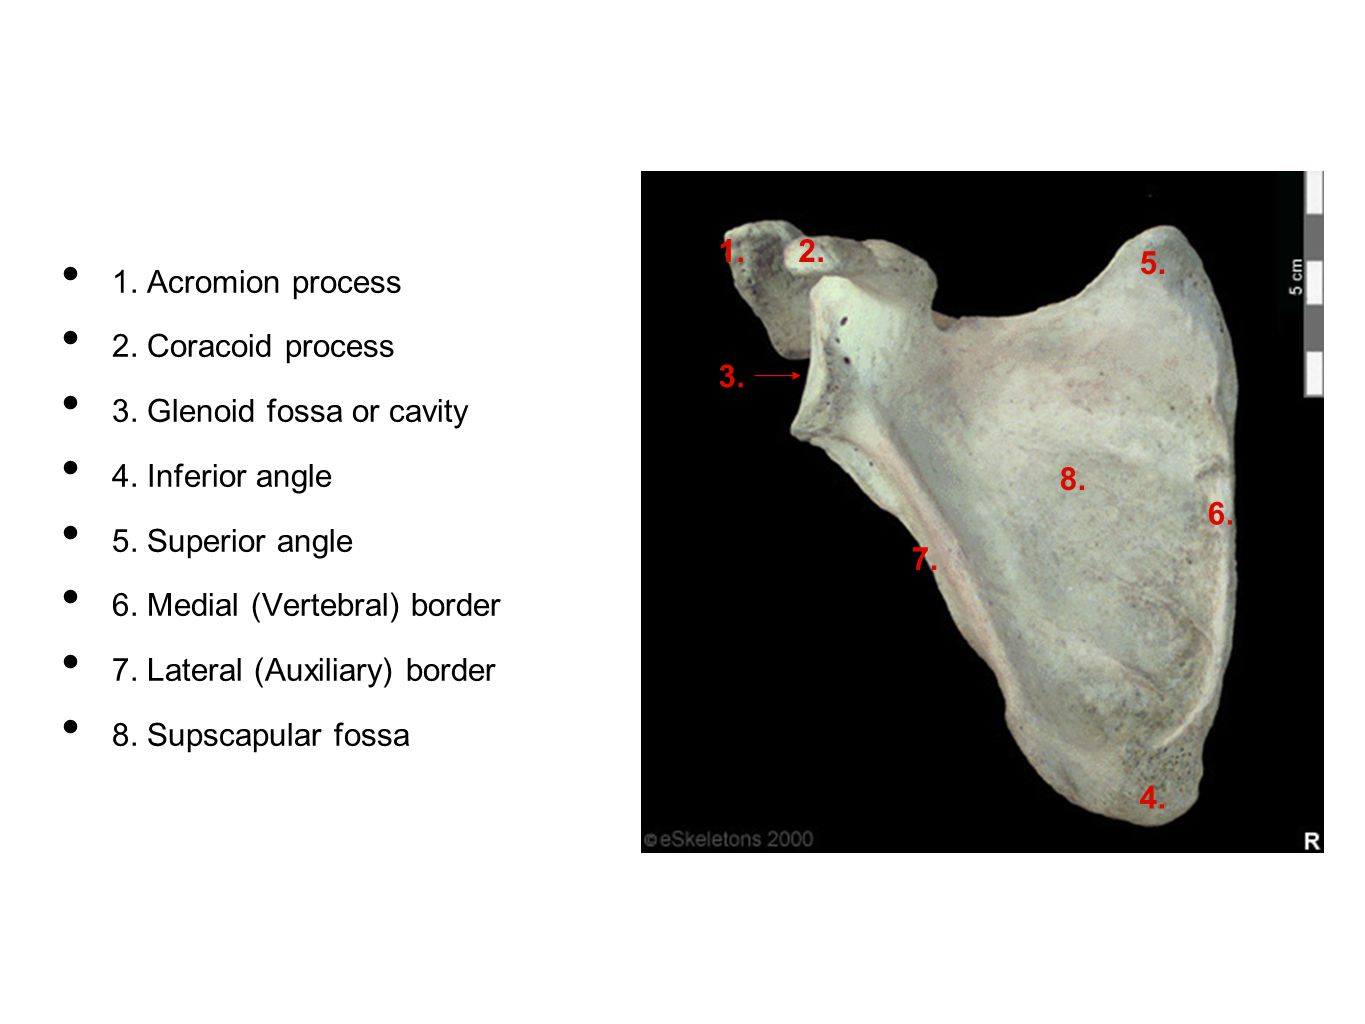 1. Acromion process 2. Coracoid process. 3. Glenoid fossa or cavity. 4. Inferior angle. 5. Superior angle.